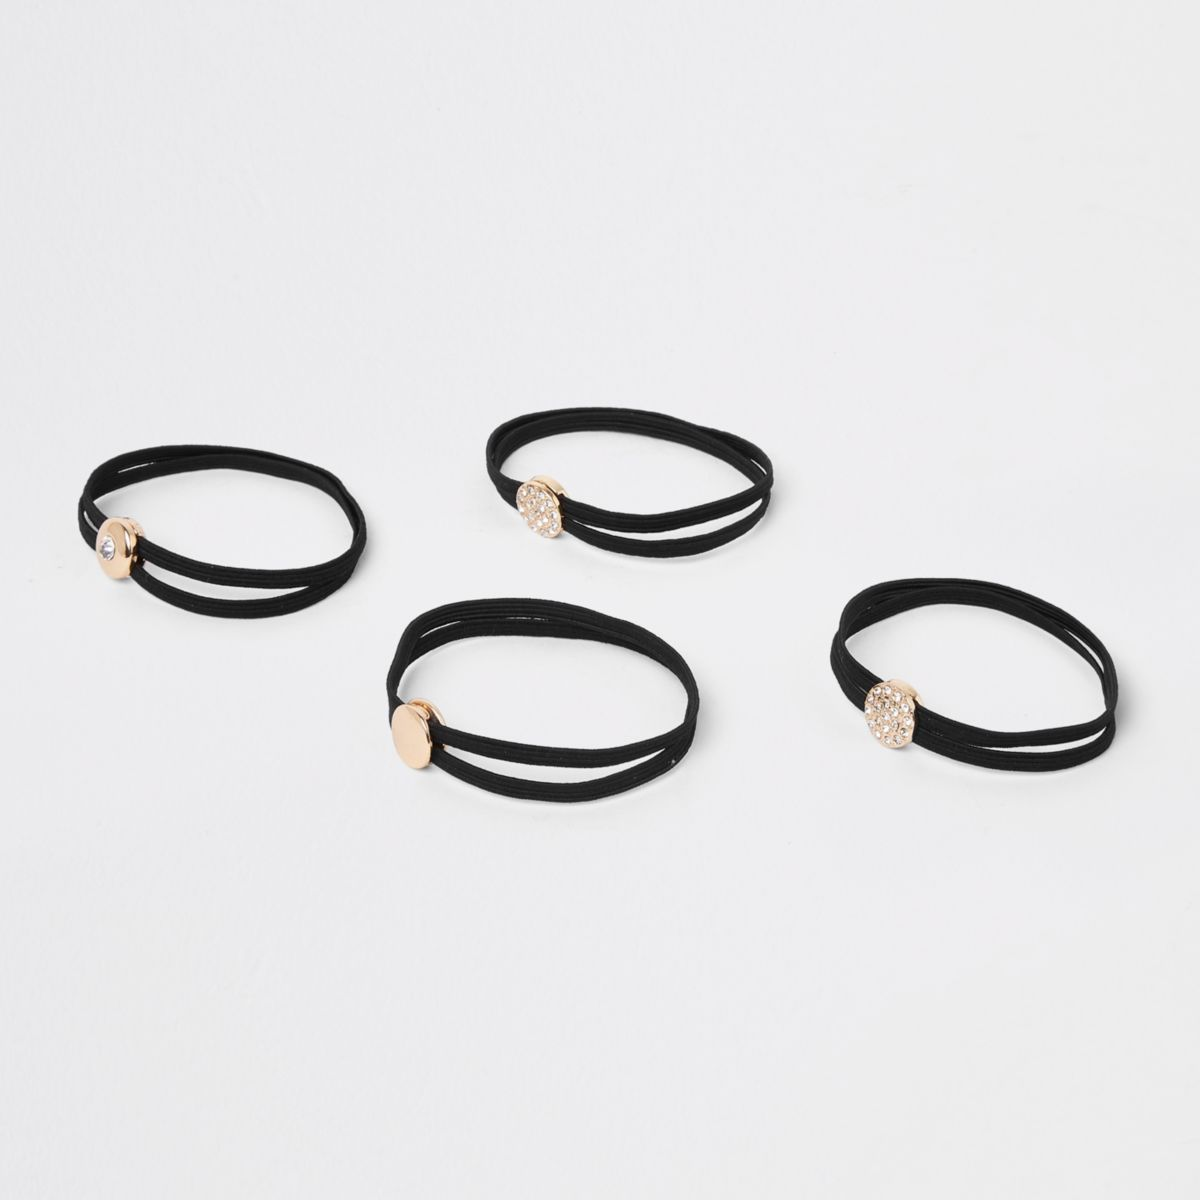 Black studded hair tie pack